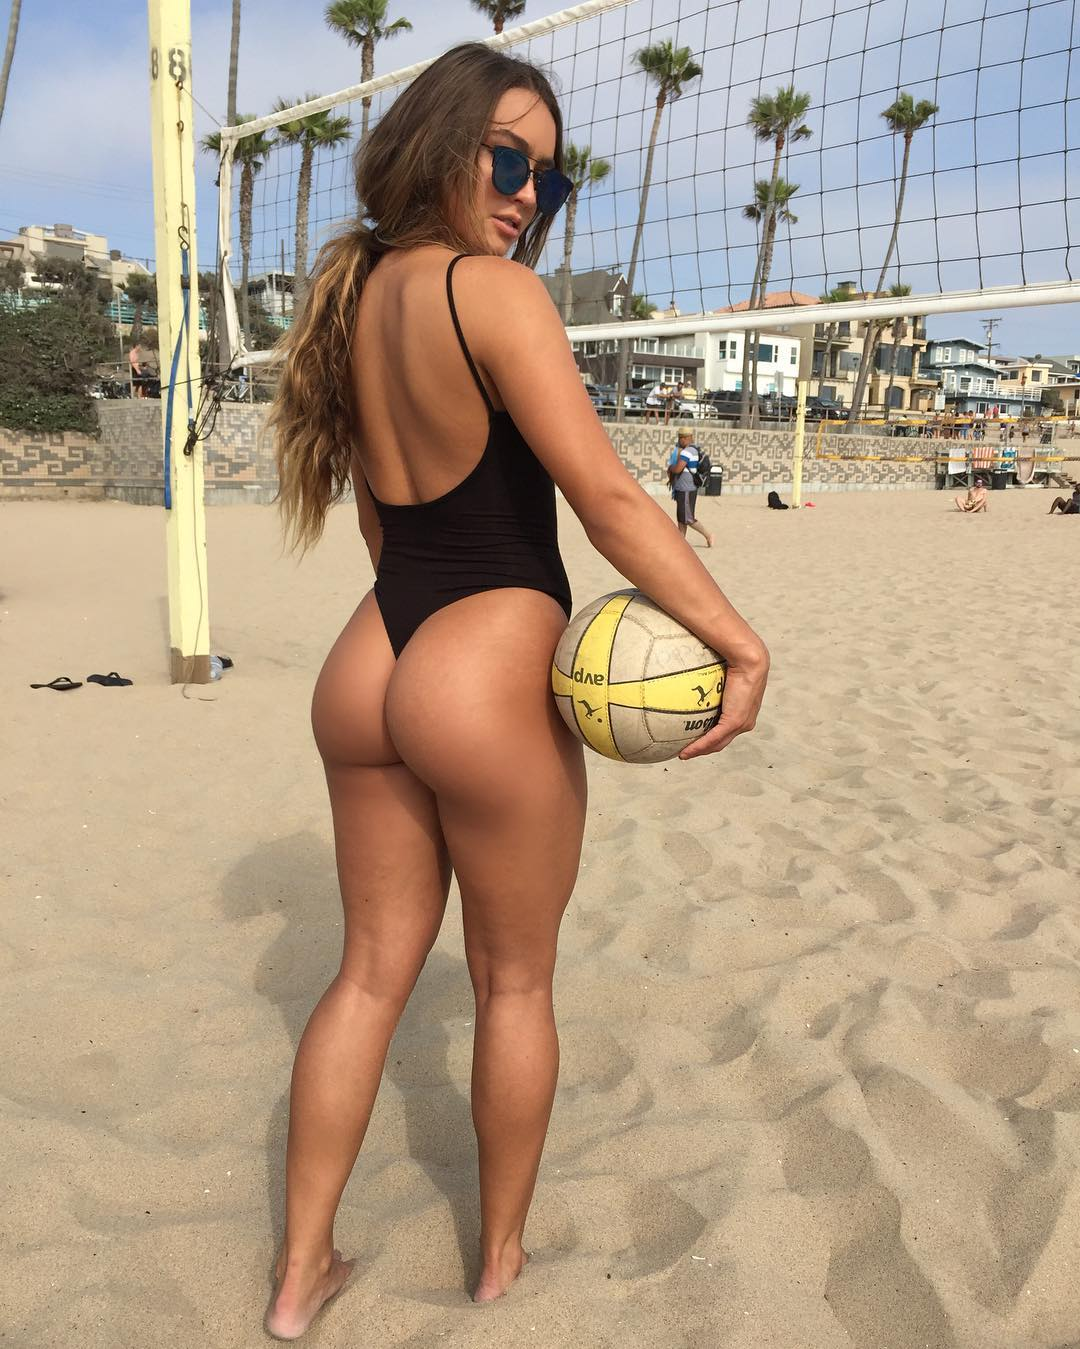 sommer_ray-3